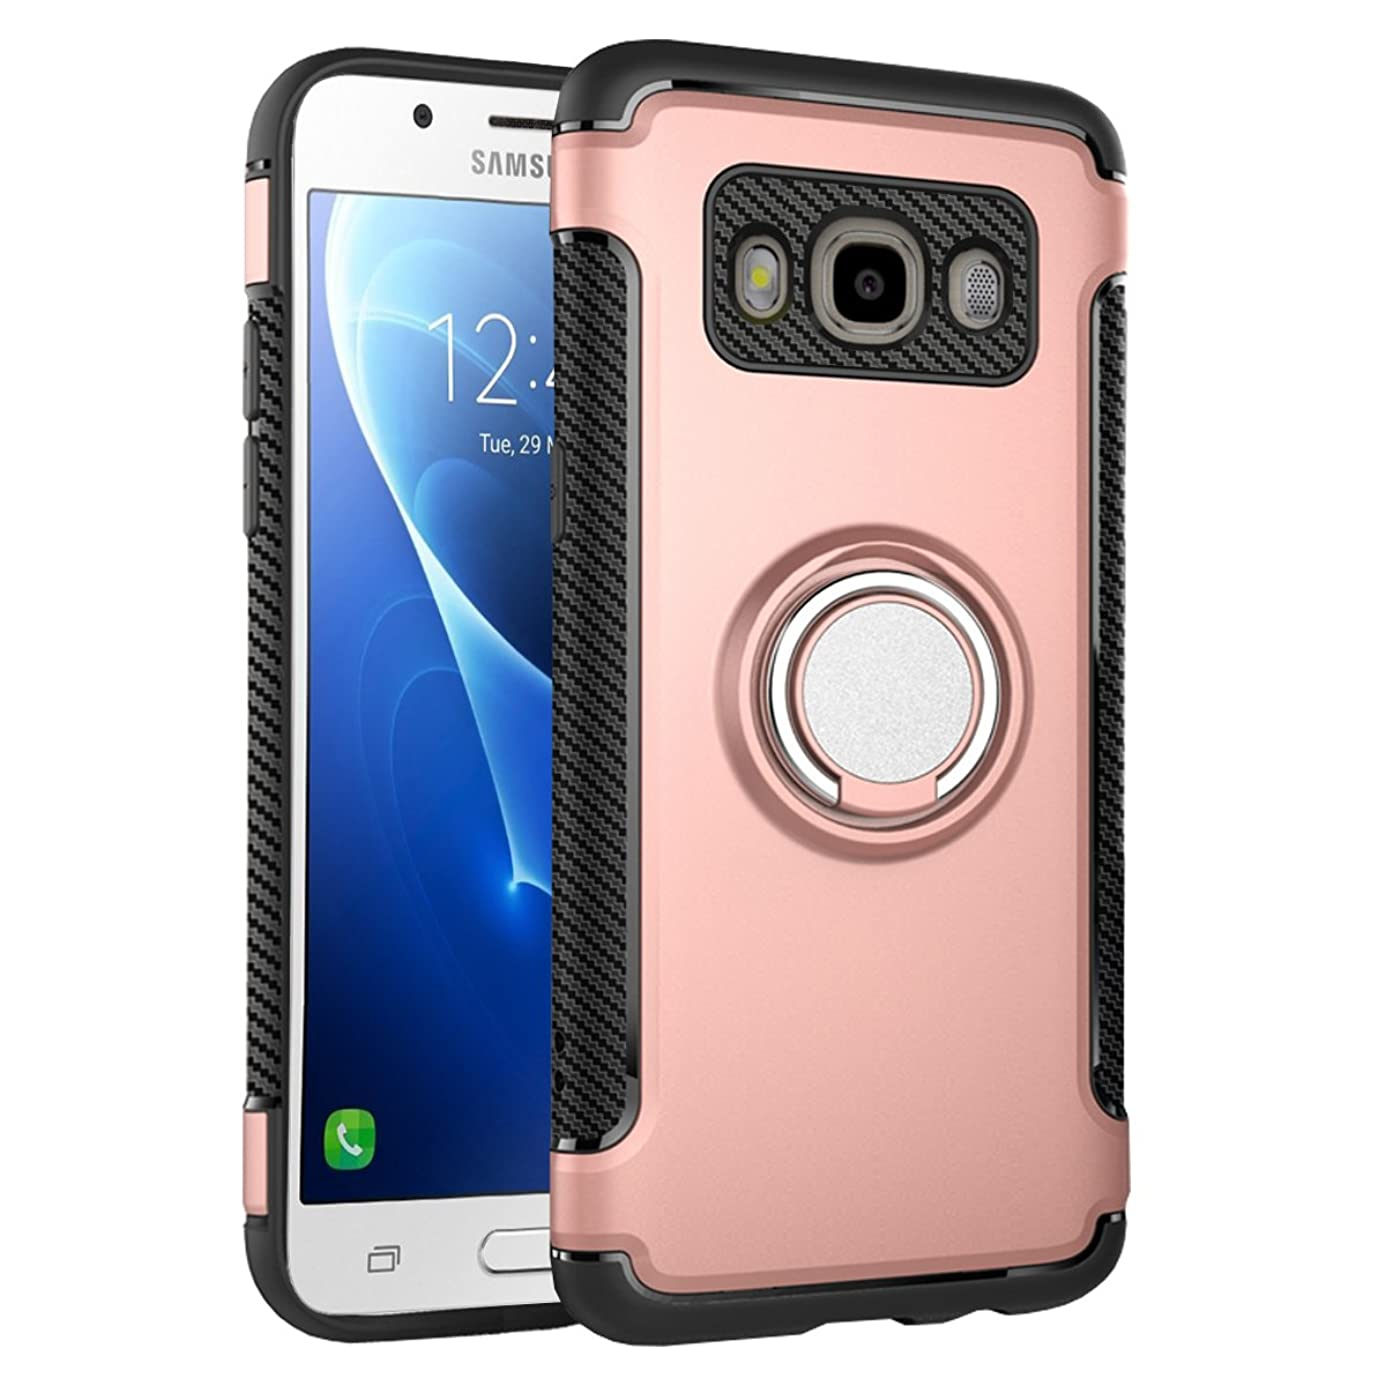 Galaxy J5 2016 Case Ring Kickstand Holder, UBERANT 360 Adjustable Ring Grip Stand & Built-in Soft TPU Shock-absorption Protection Cover Case for Samsung Galaxy J5 2016 J510 5.2